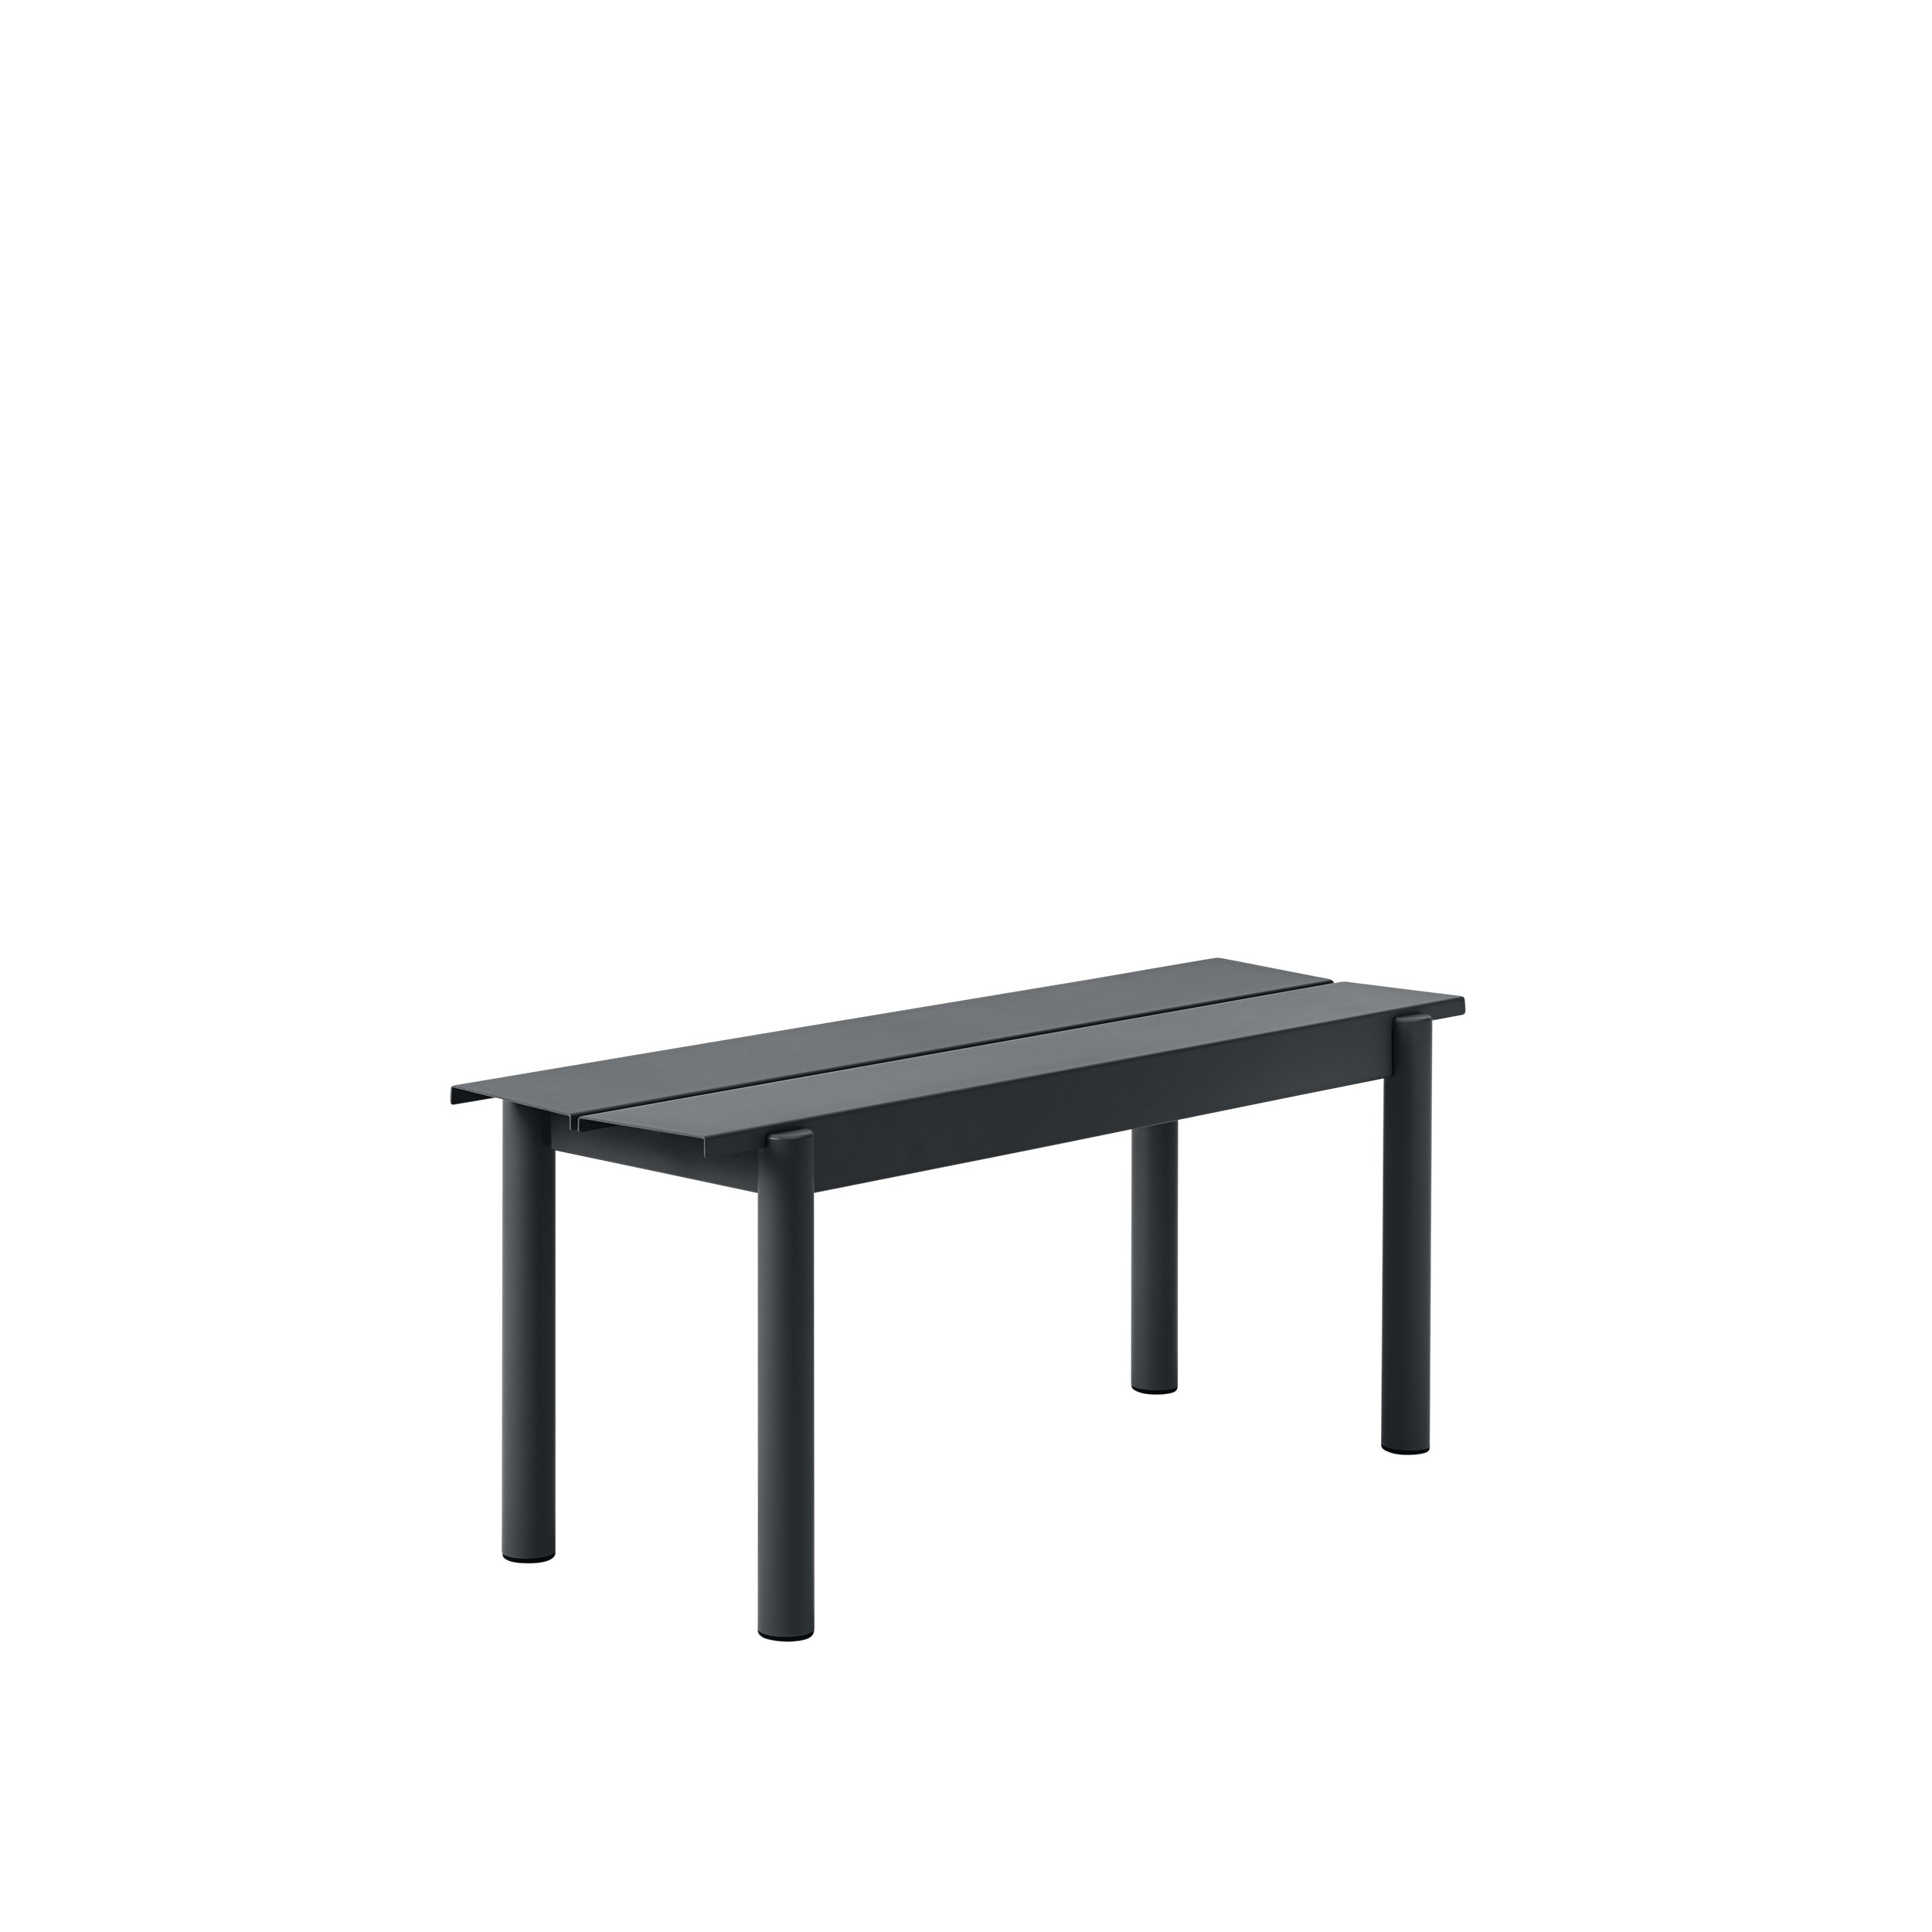 Muuto Linear Steel Bench 110 Black